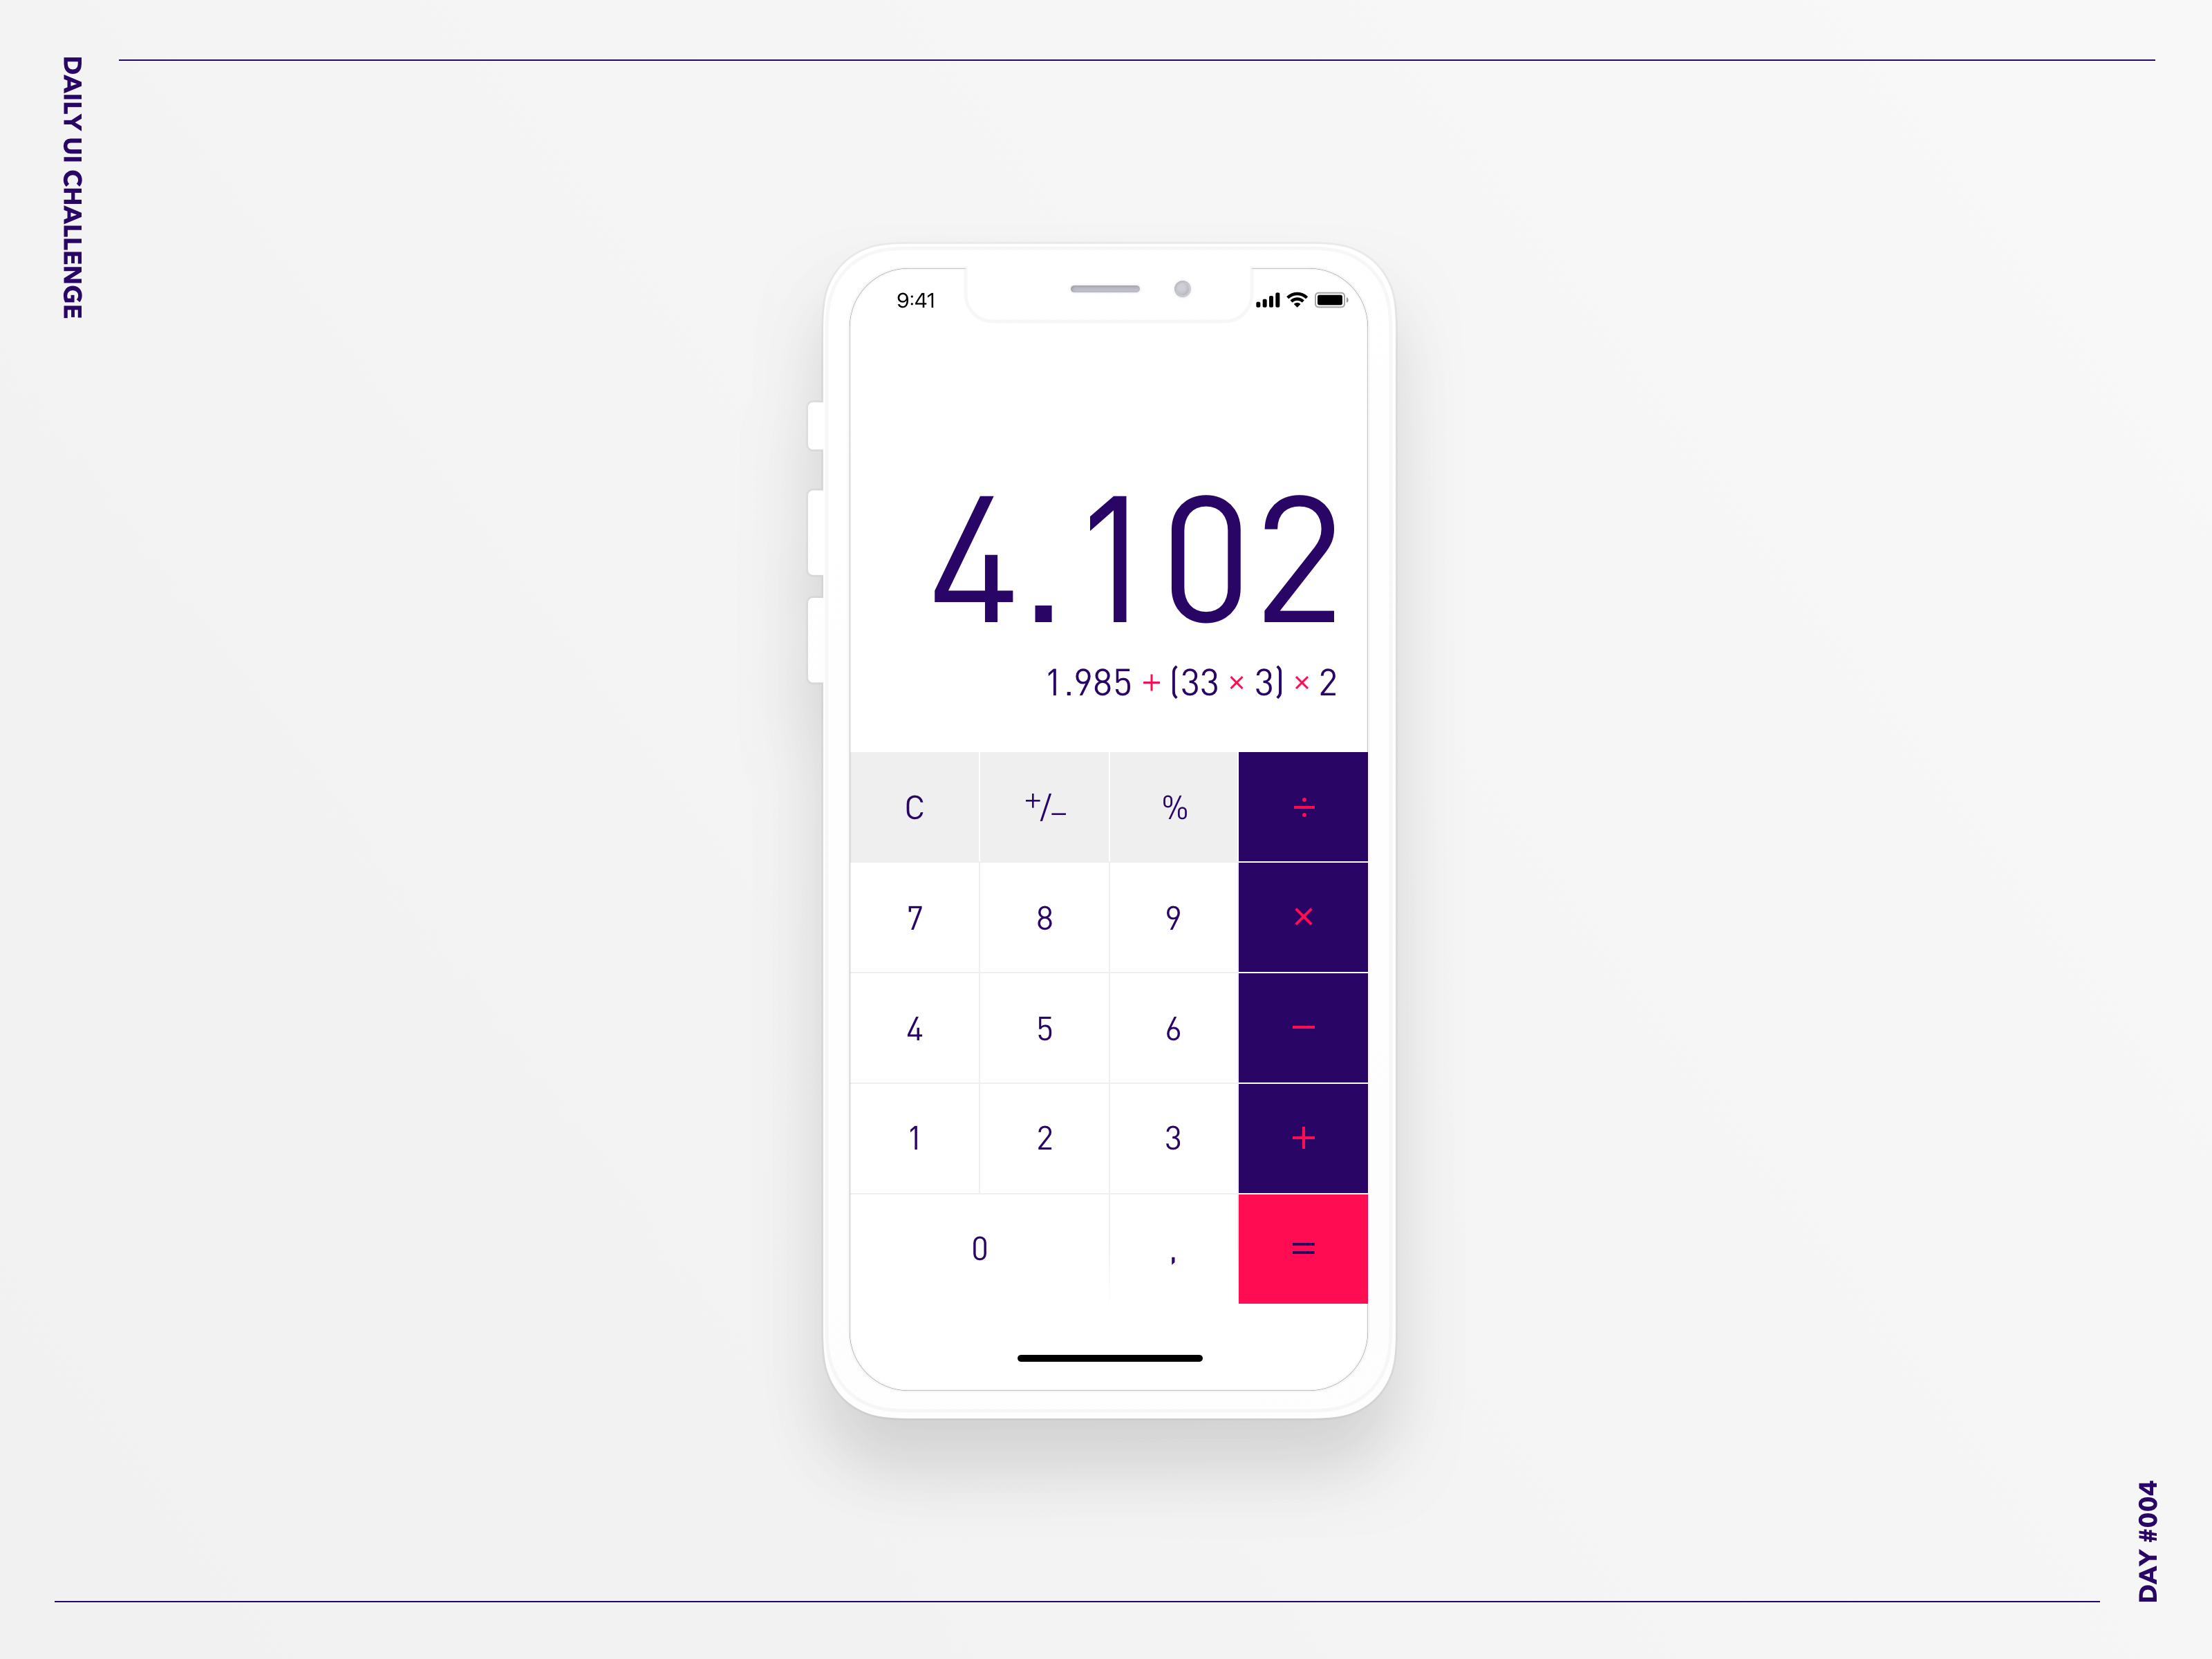 004-DUIC-Calculator-Dribbble